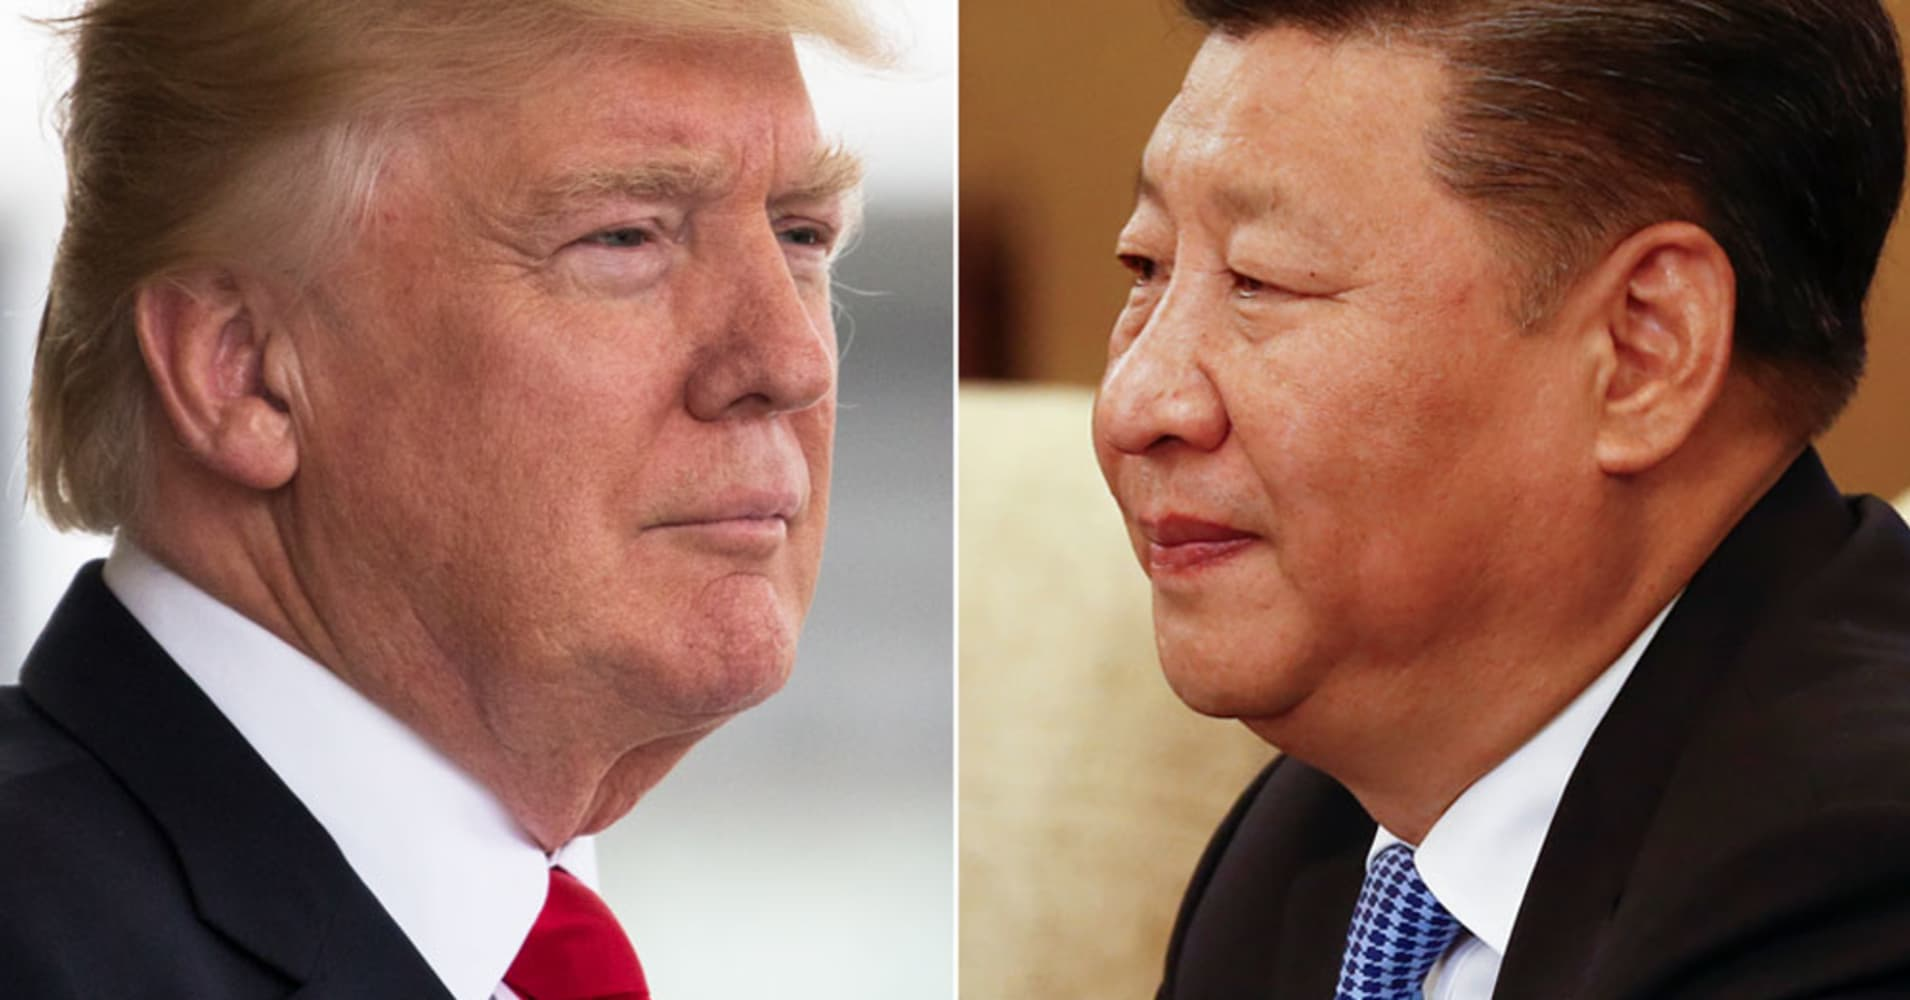 If forced to take sides, most countries would pick the US over China, says author